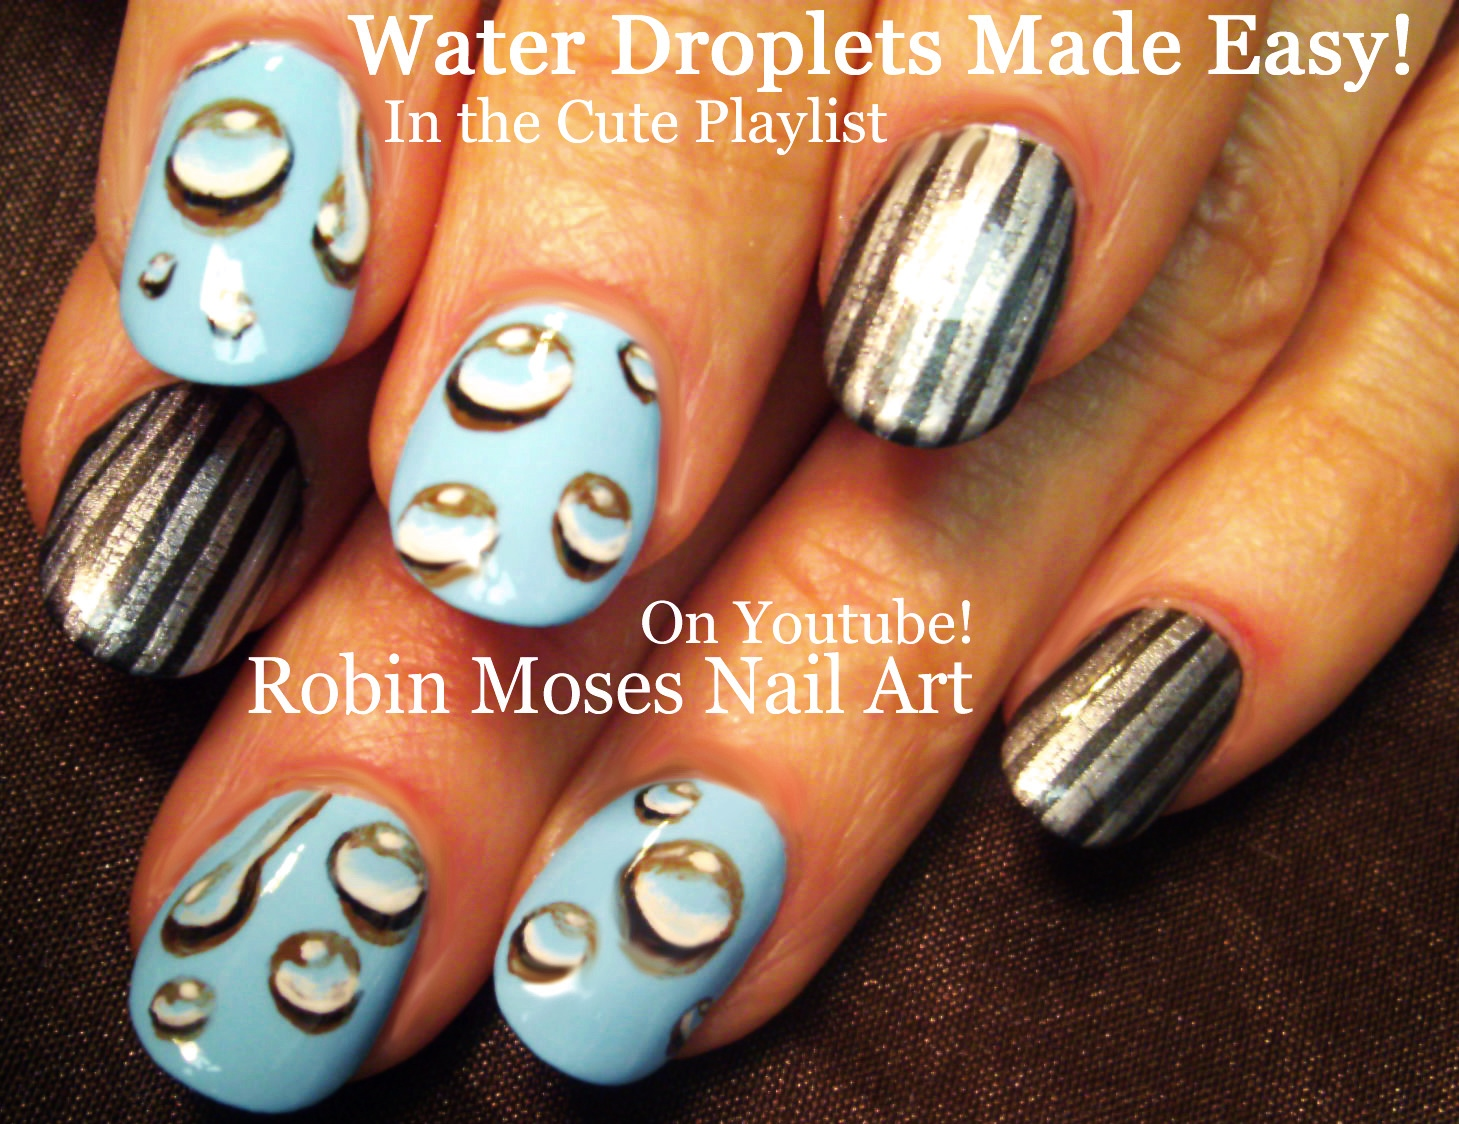 89 Nail Polish Designs With Water Step By Step 3 Under The Sea